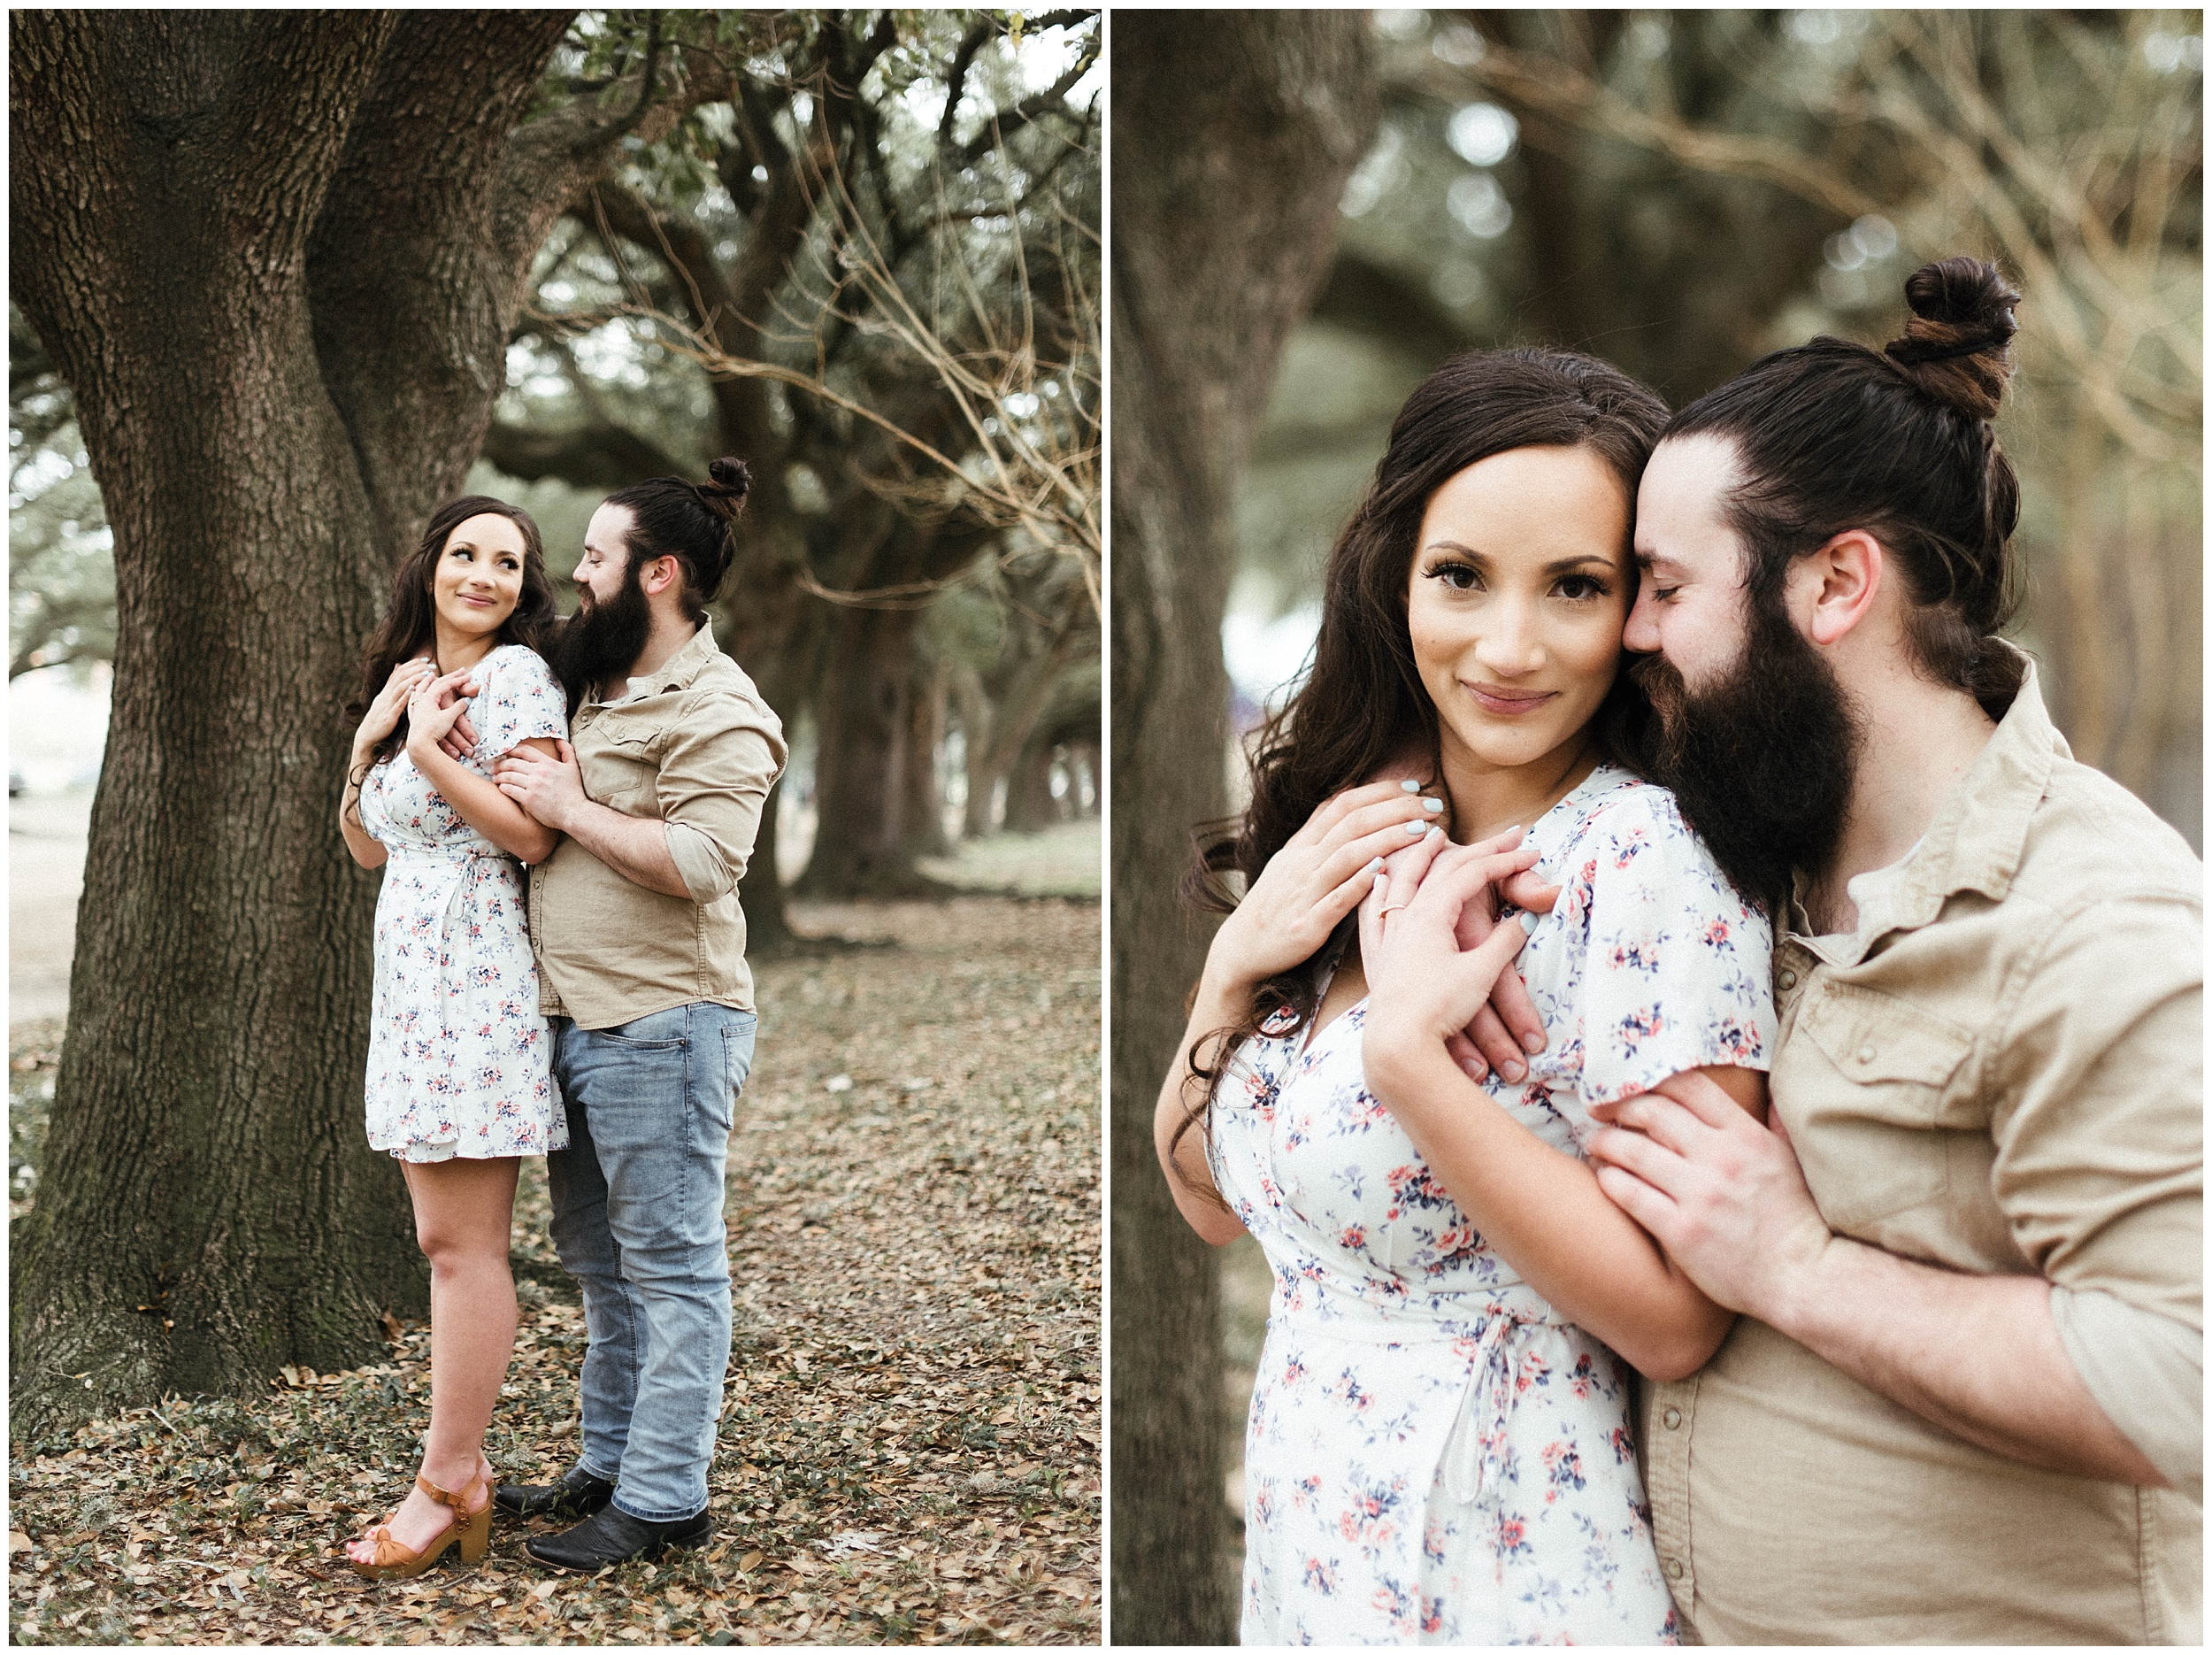 Houston Engagement Session | Houston Engagement Photographer | www.jordanmitchellphotography.com